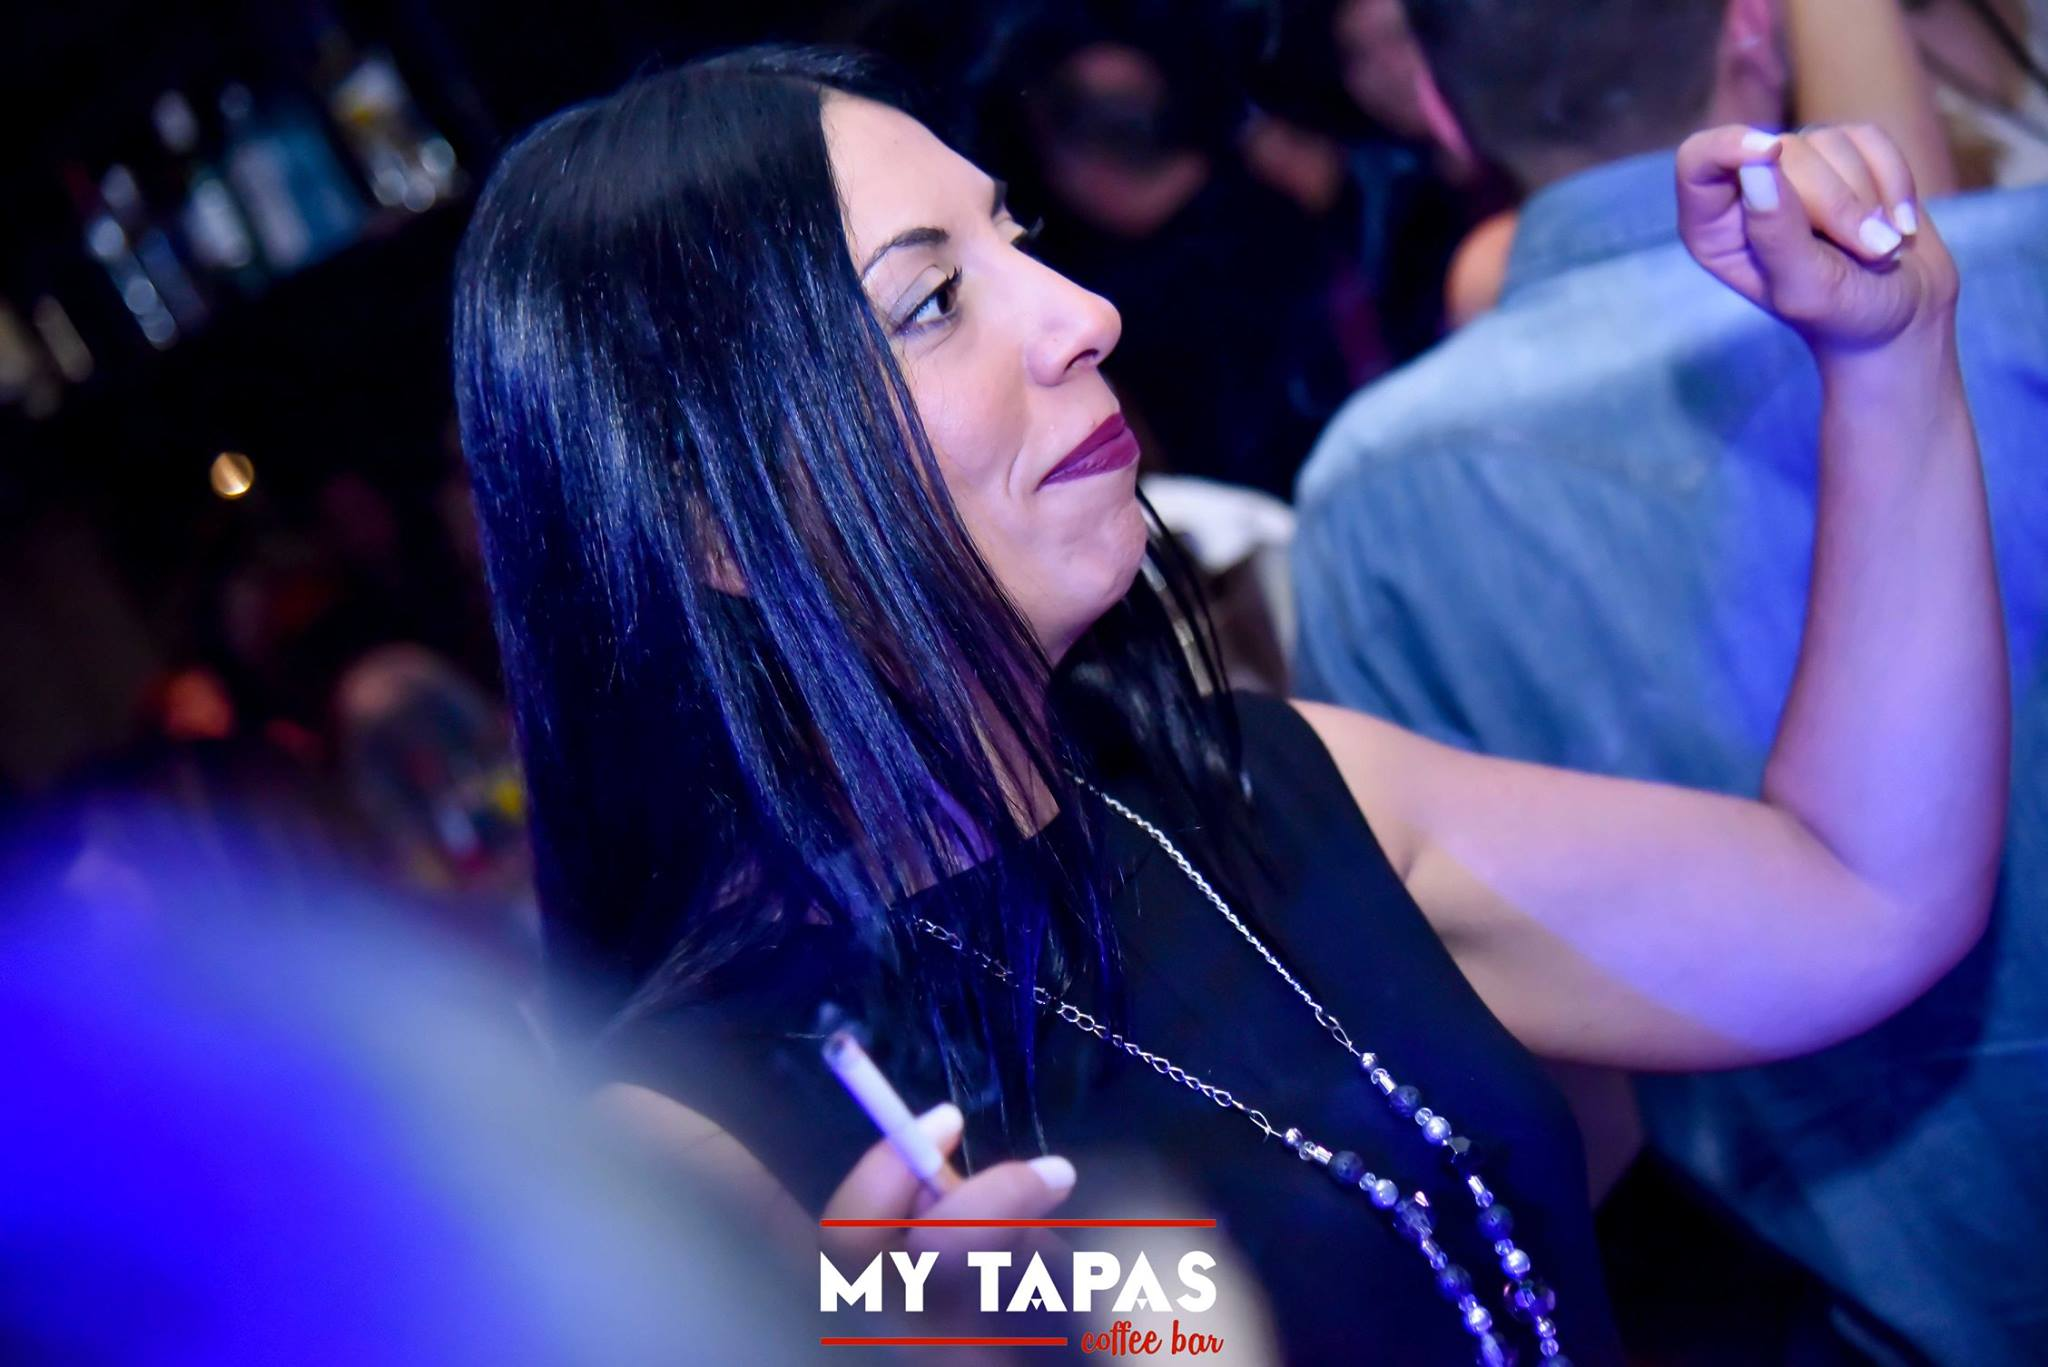 18. 22498868 1576369665716574 3751039974626554312 o 1 - My Live Tuesdays στο MY Tapas Coffee bar | Τρίτη 17.10 Part 1/2